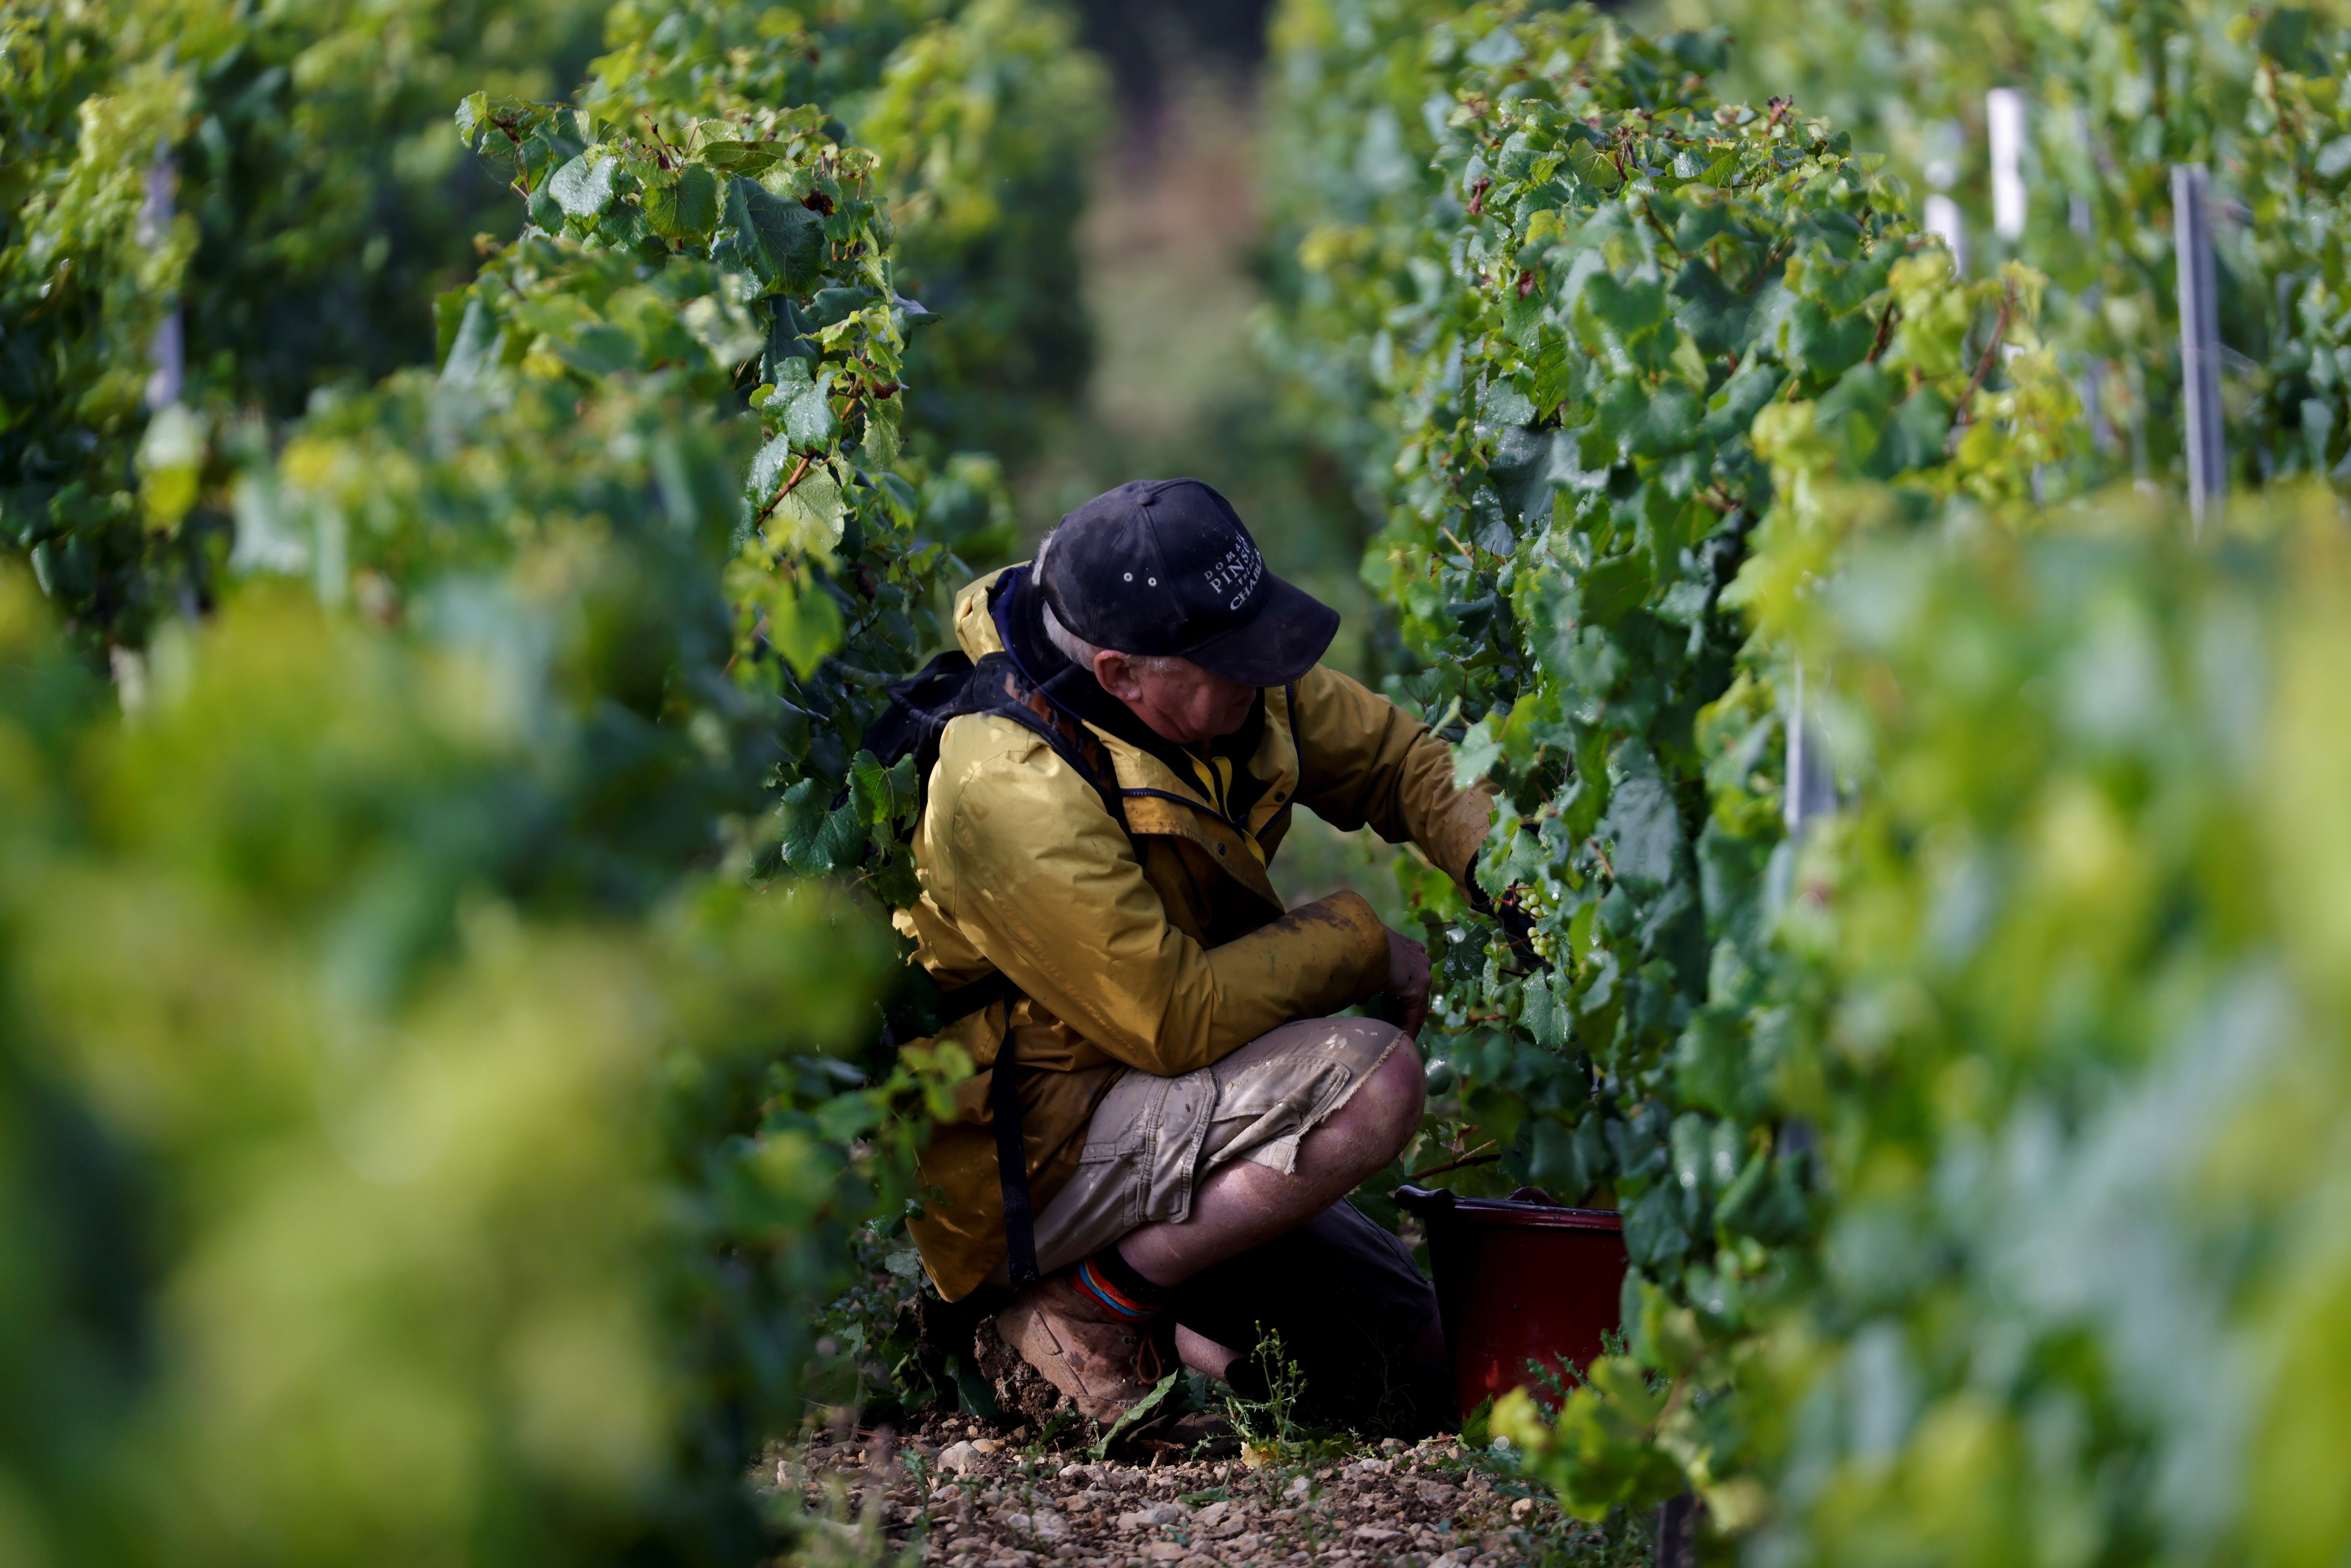 A worker harvests grapes in a vineyard.  REUTERS/Pascal Rossignol